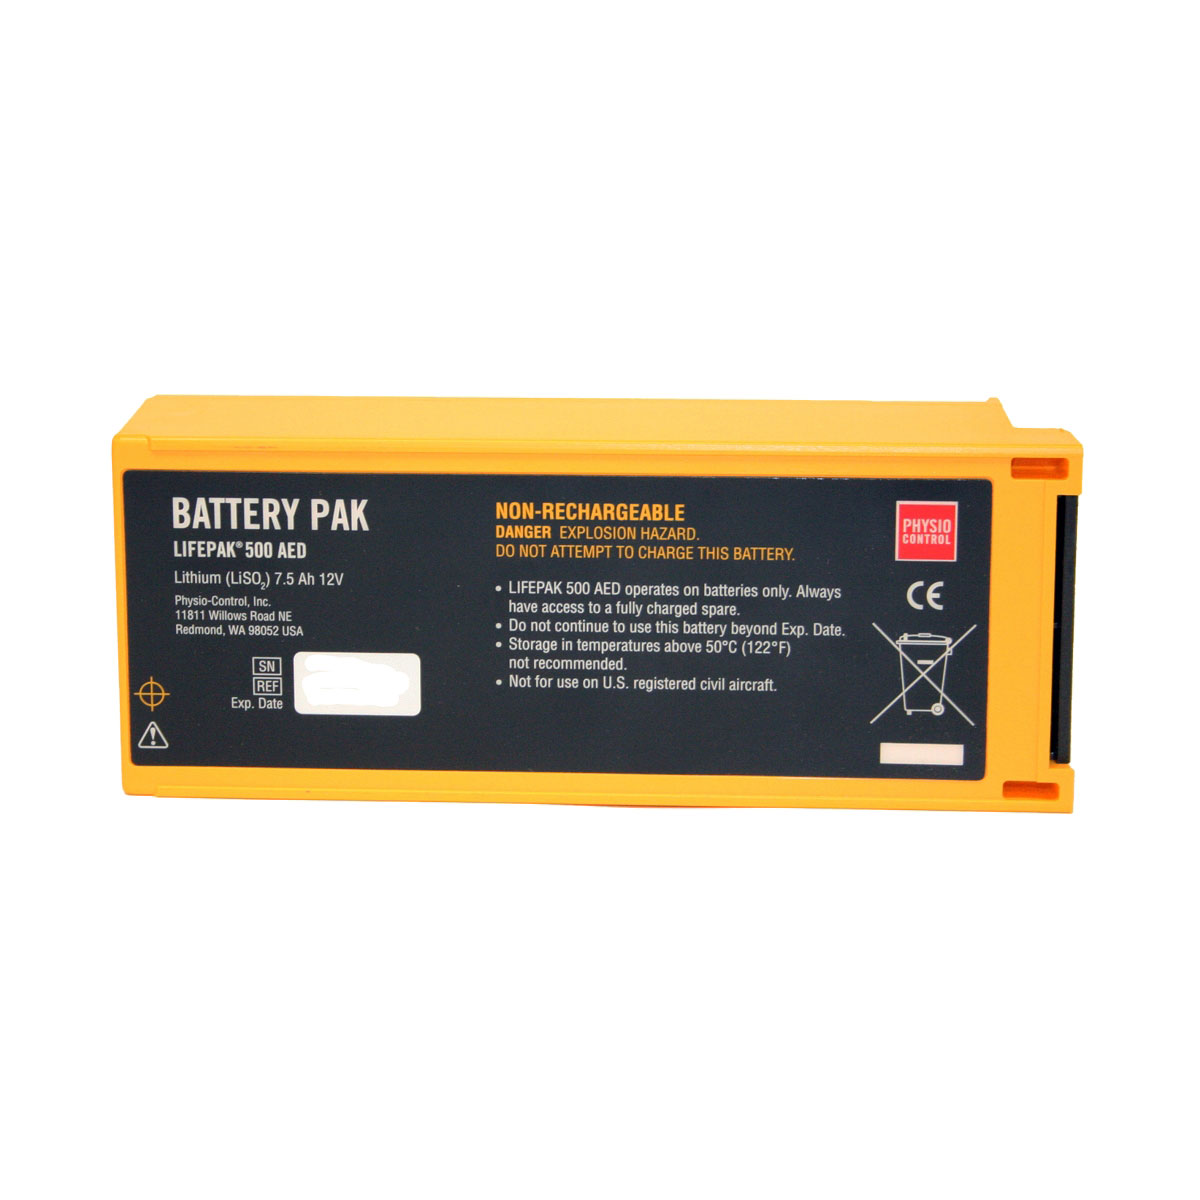 Physio-Control Lifepak® Non-Rechargeable Lithium Sulfur Dioxide Battery Pak